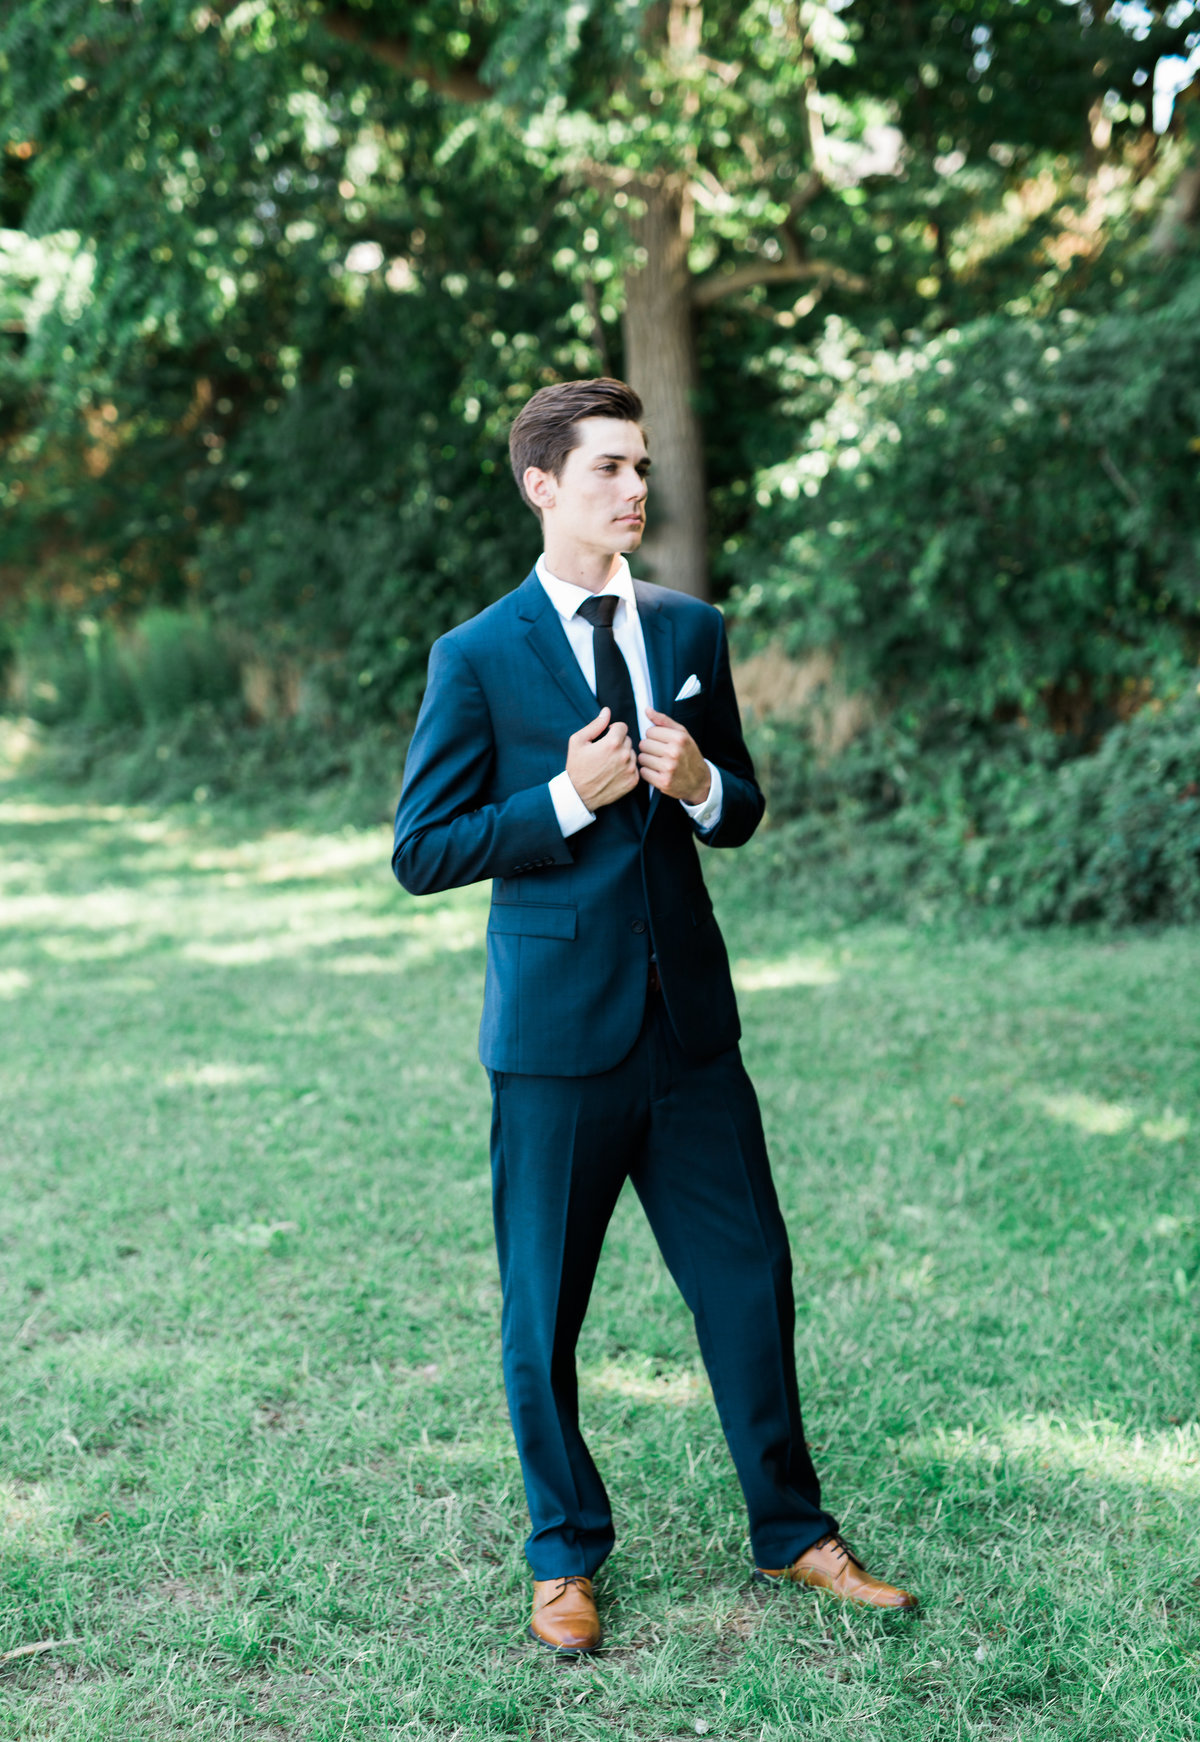 Wedding Day photography - groom getting ready - Destiny Dawn Photography